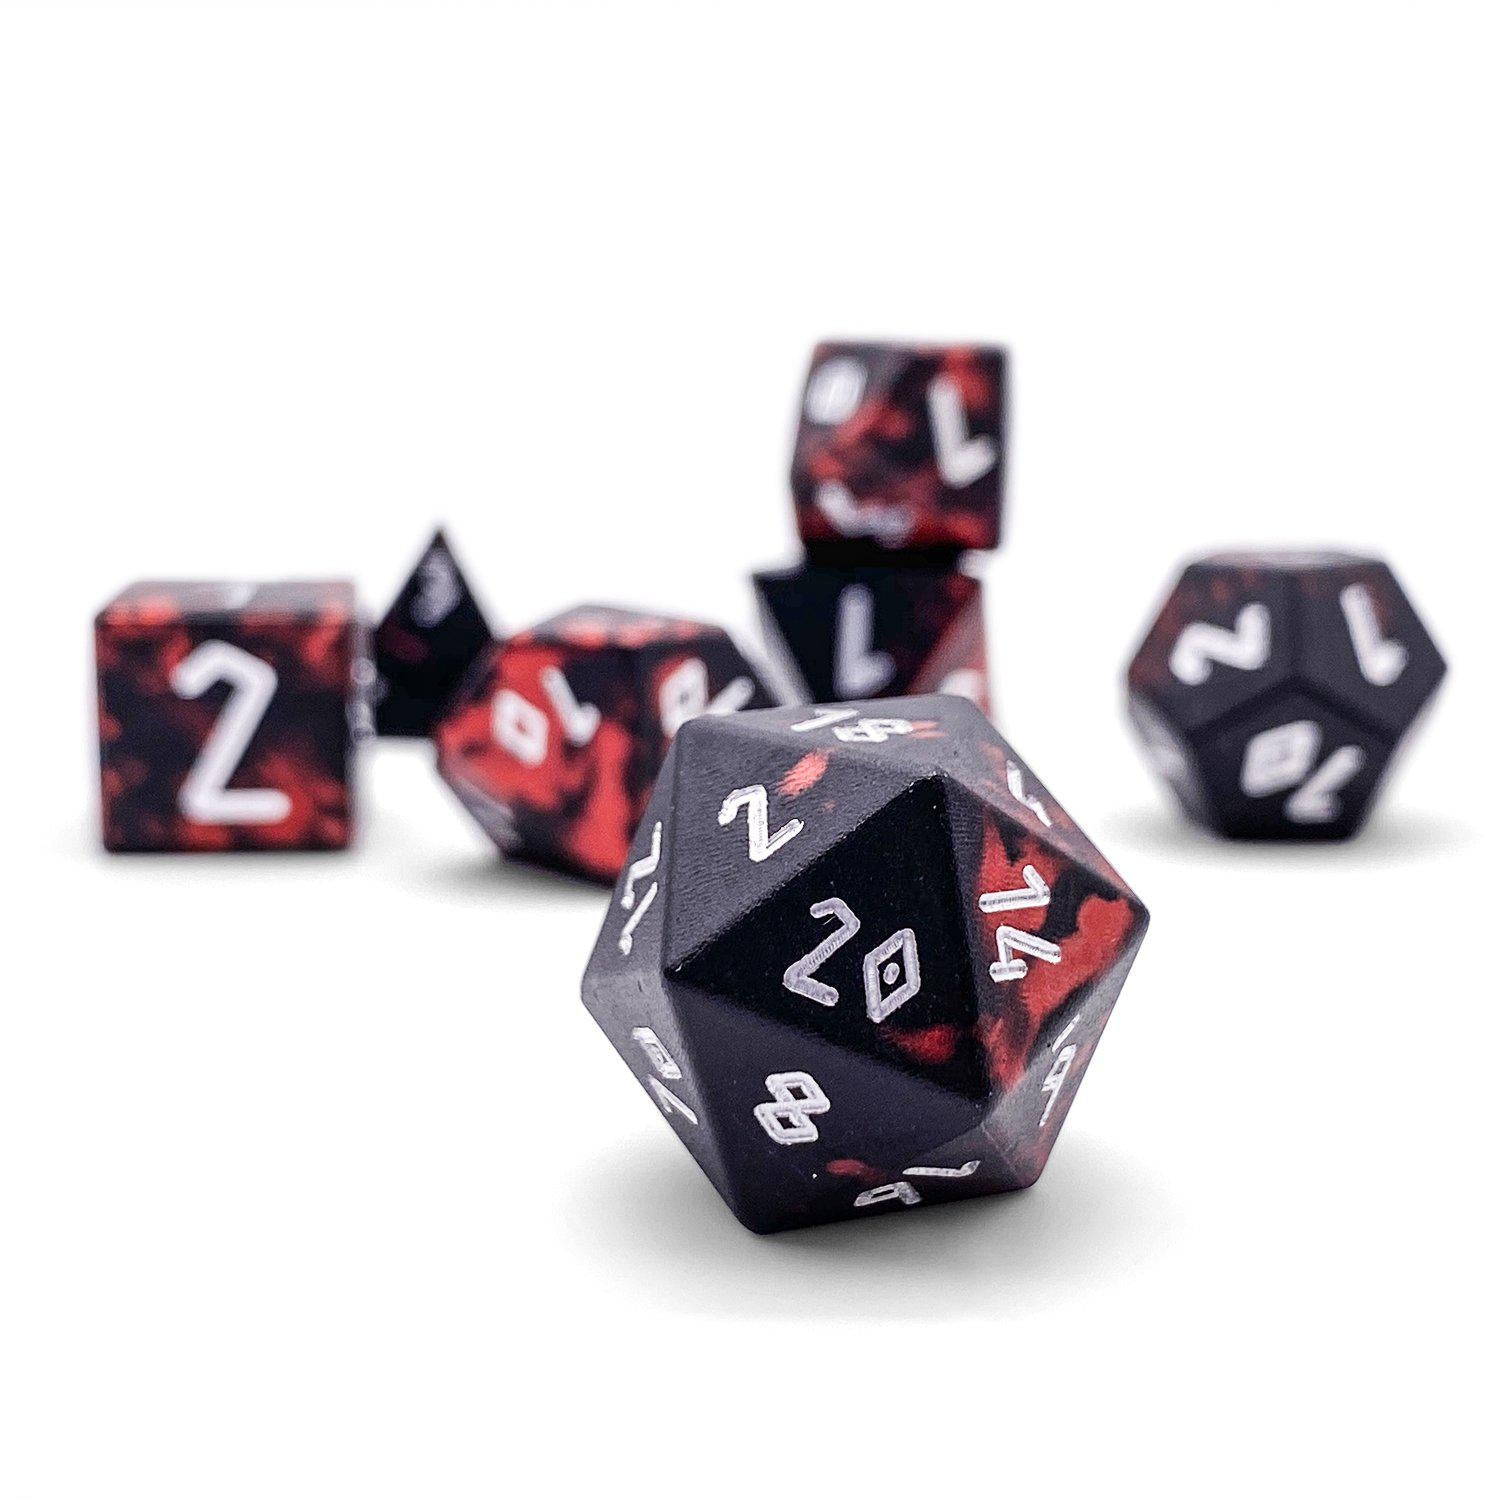 Demons Blood - Wondrous Dice - Norse Font - Set of 7 RPG Dice by Norse Foundry Precision Polyhedral Dice Set